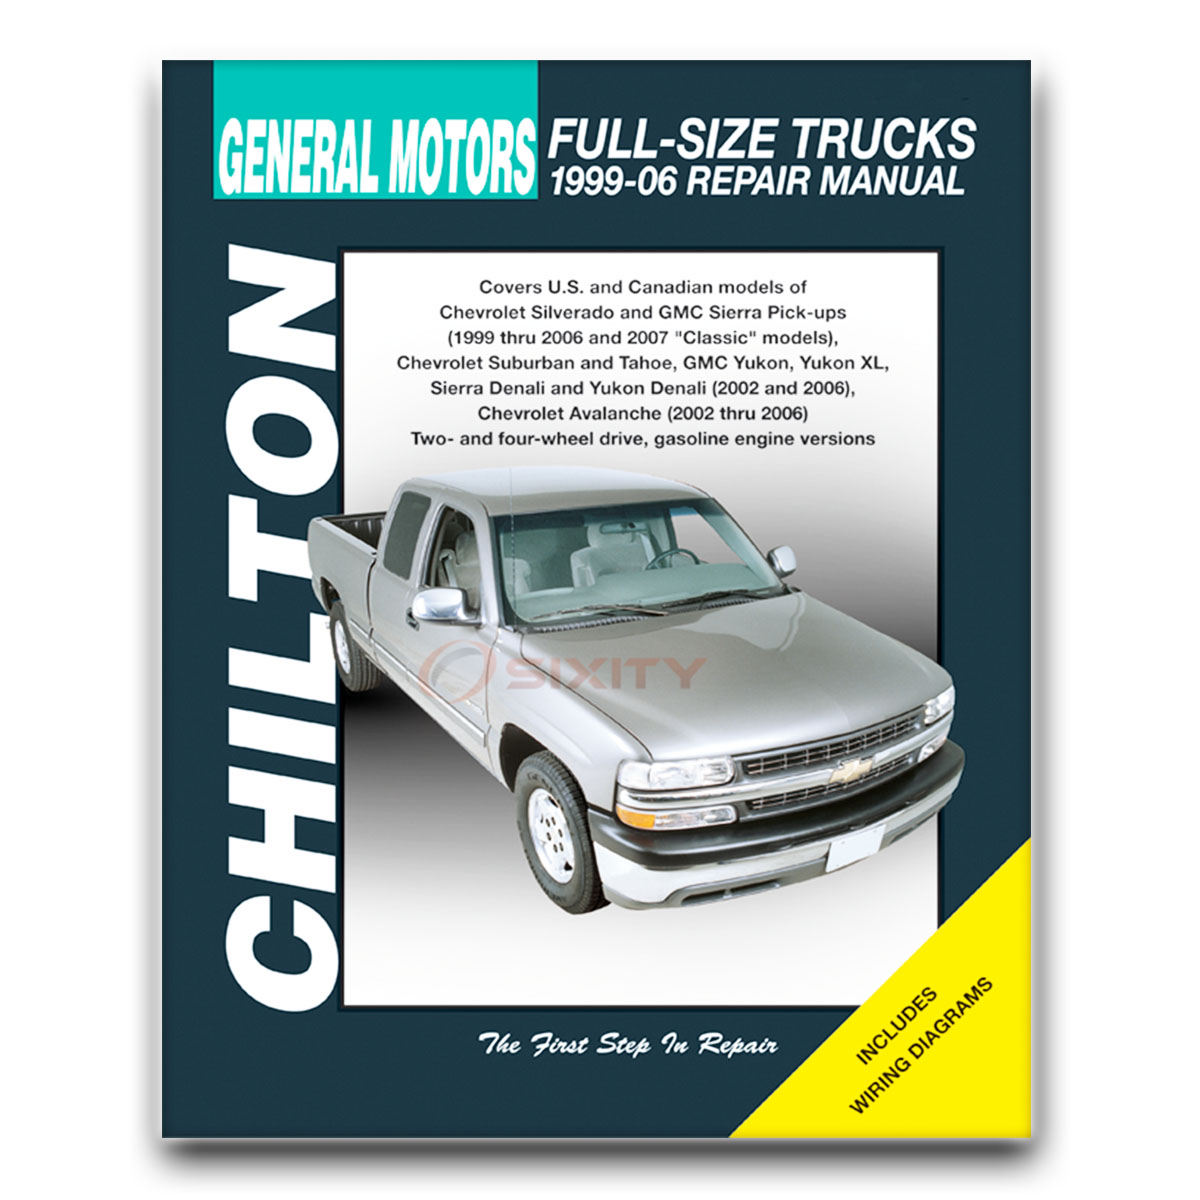 2001 gmc sierra 2500hd owners manual how to and user guide rh taxibermuda co 2001 gmc sierra owners manual pdf 2001 gmc sierra owners manual online